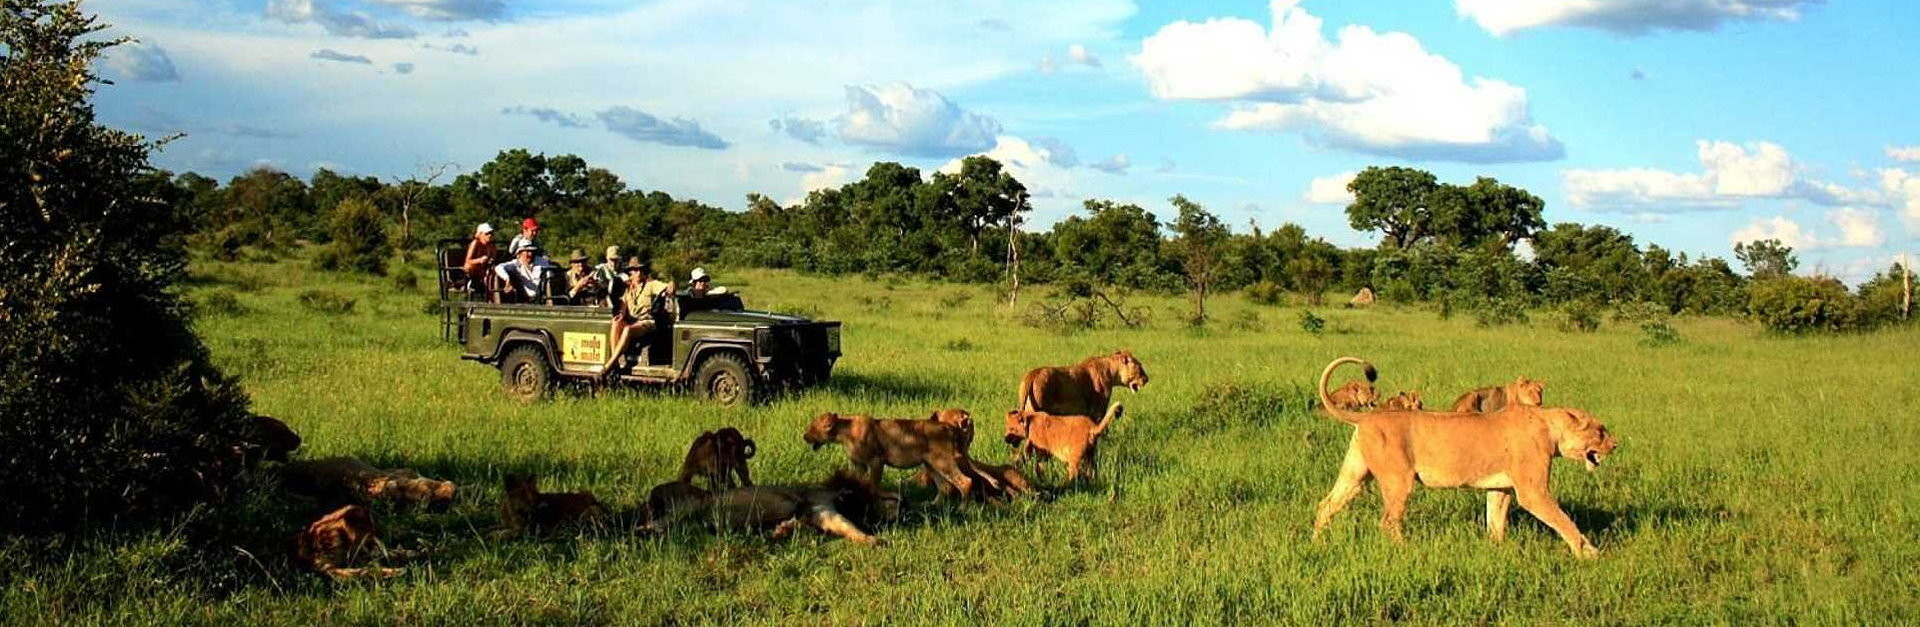 Tailormade Safaris Game Drive